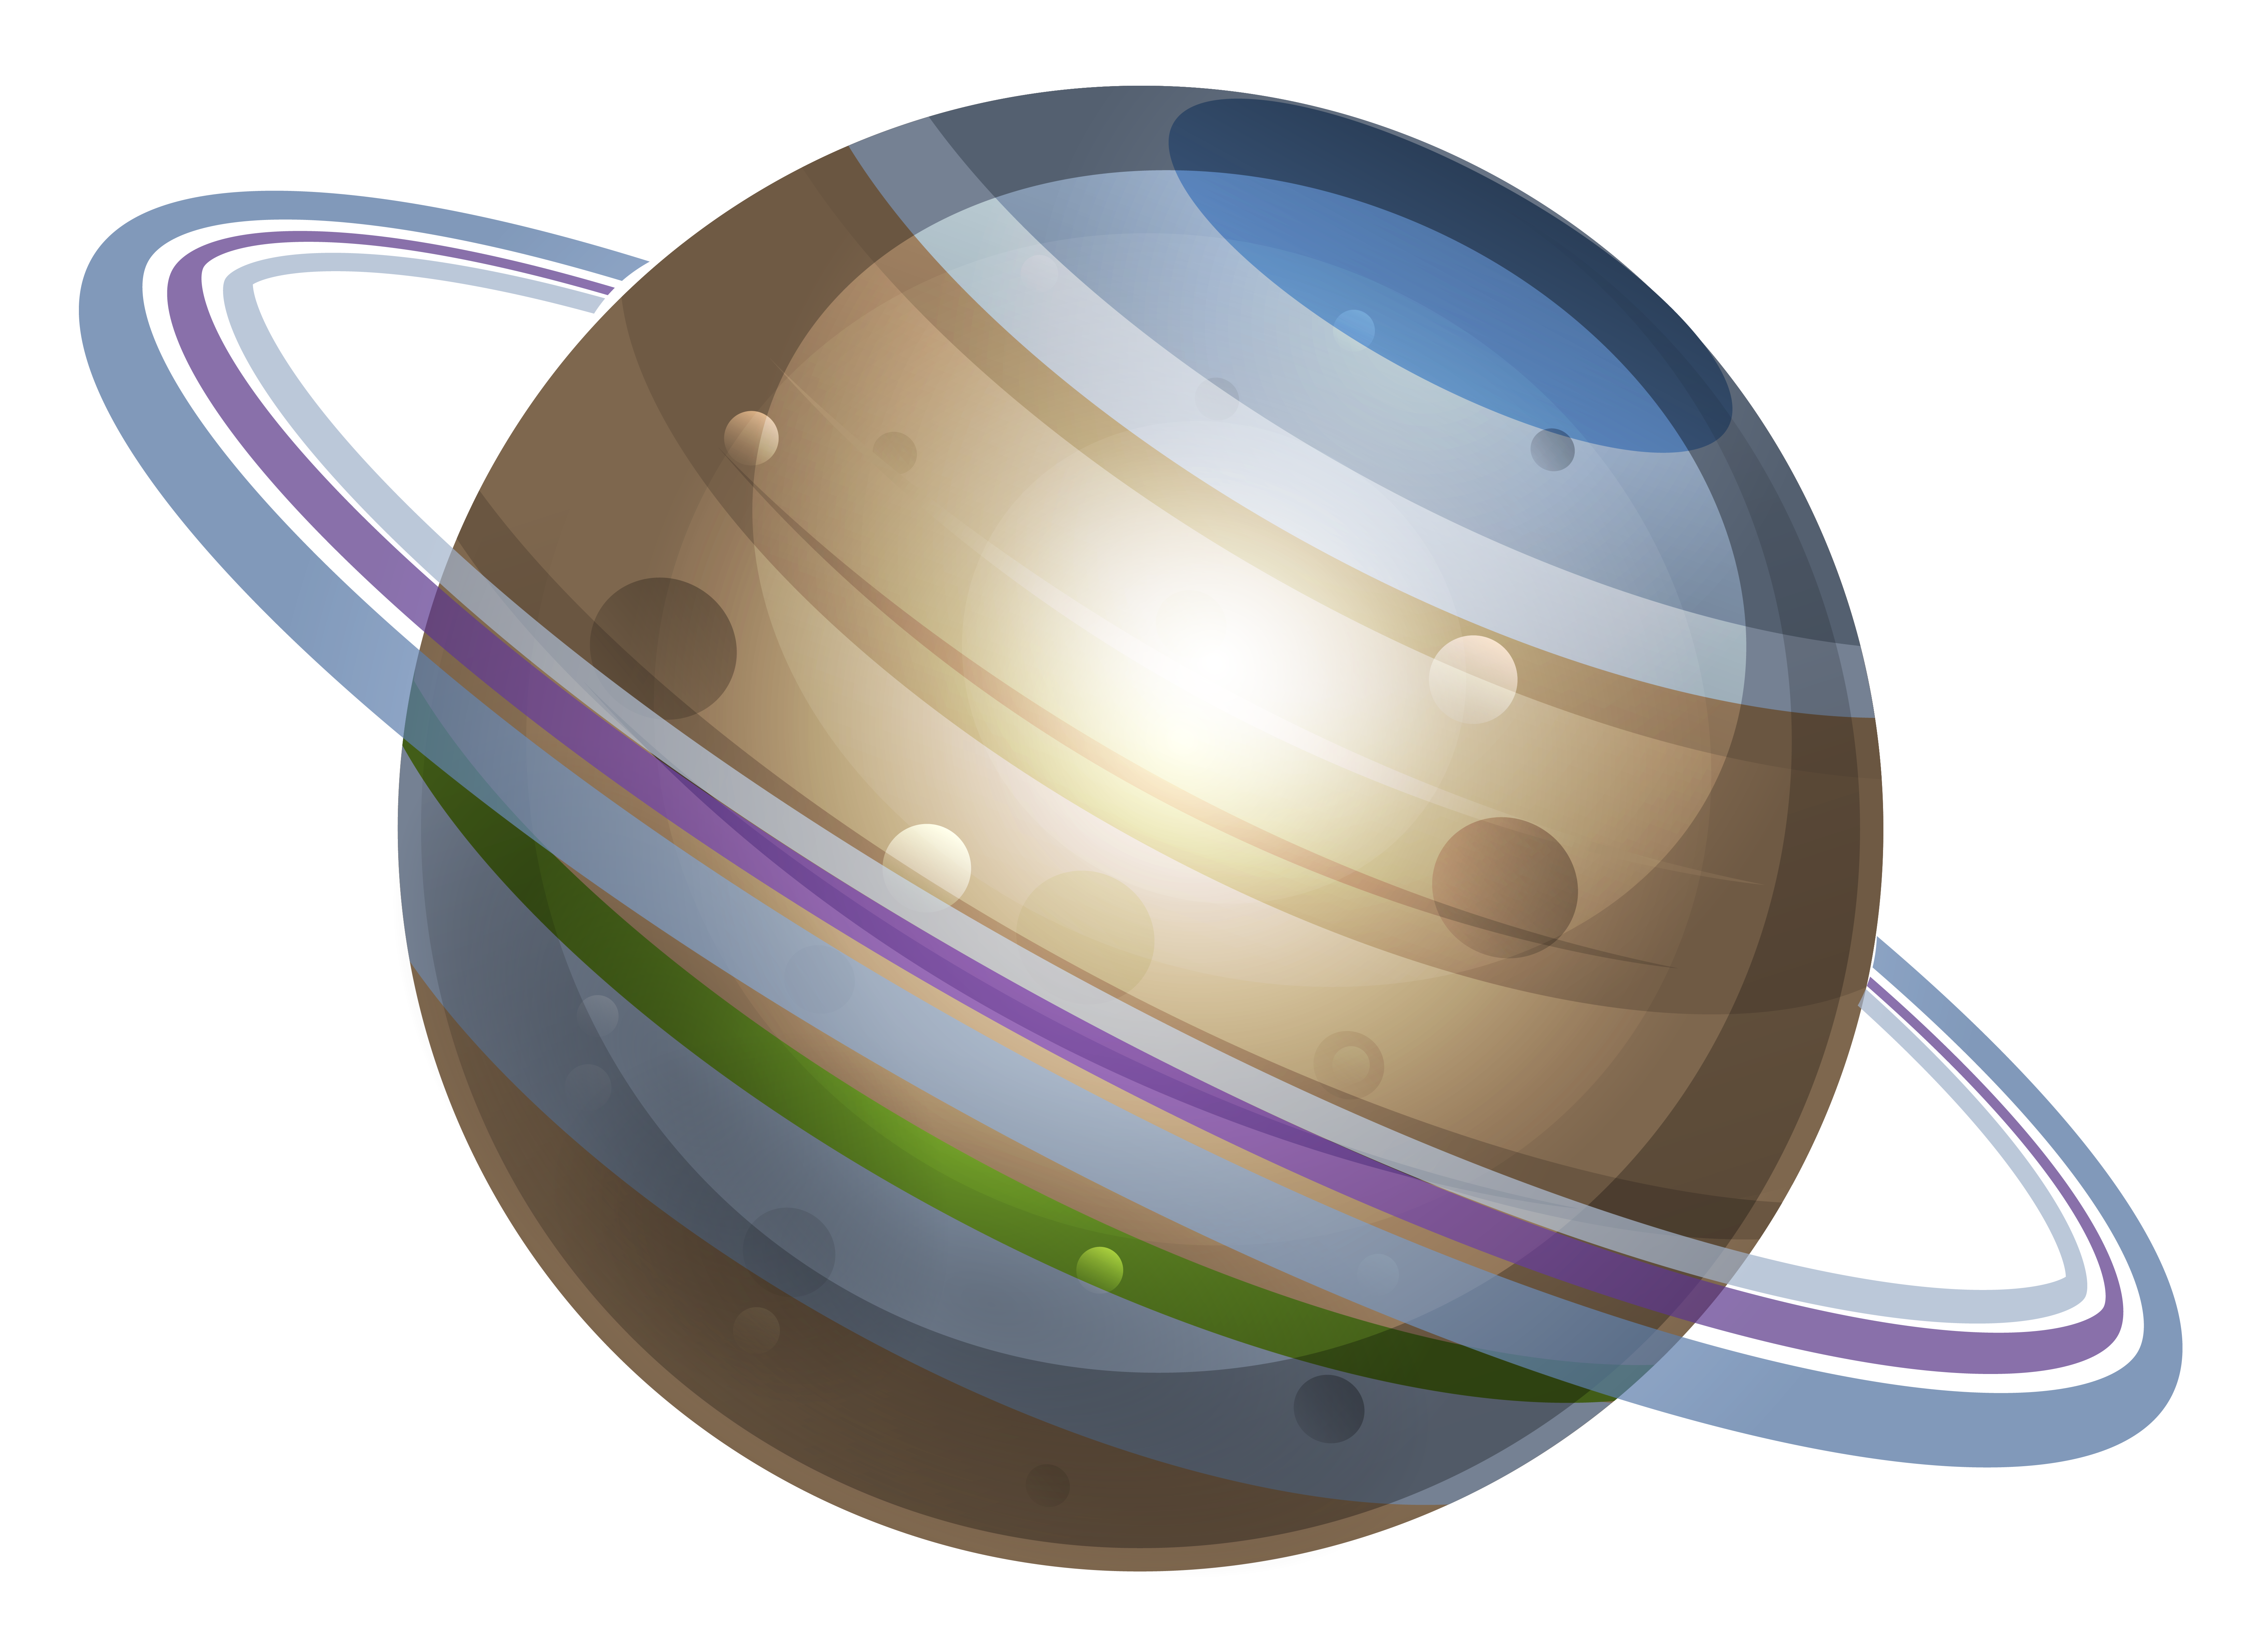 School model png image. Planet clipart